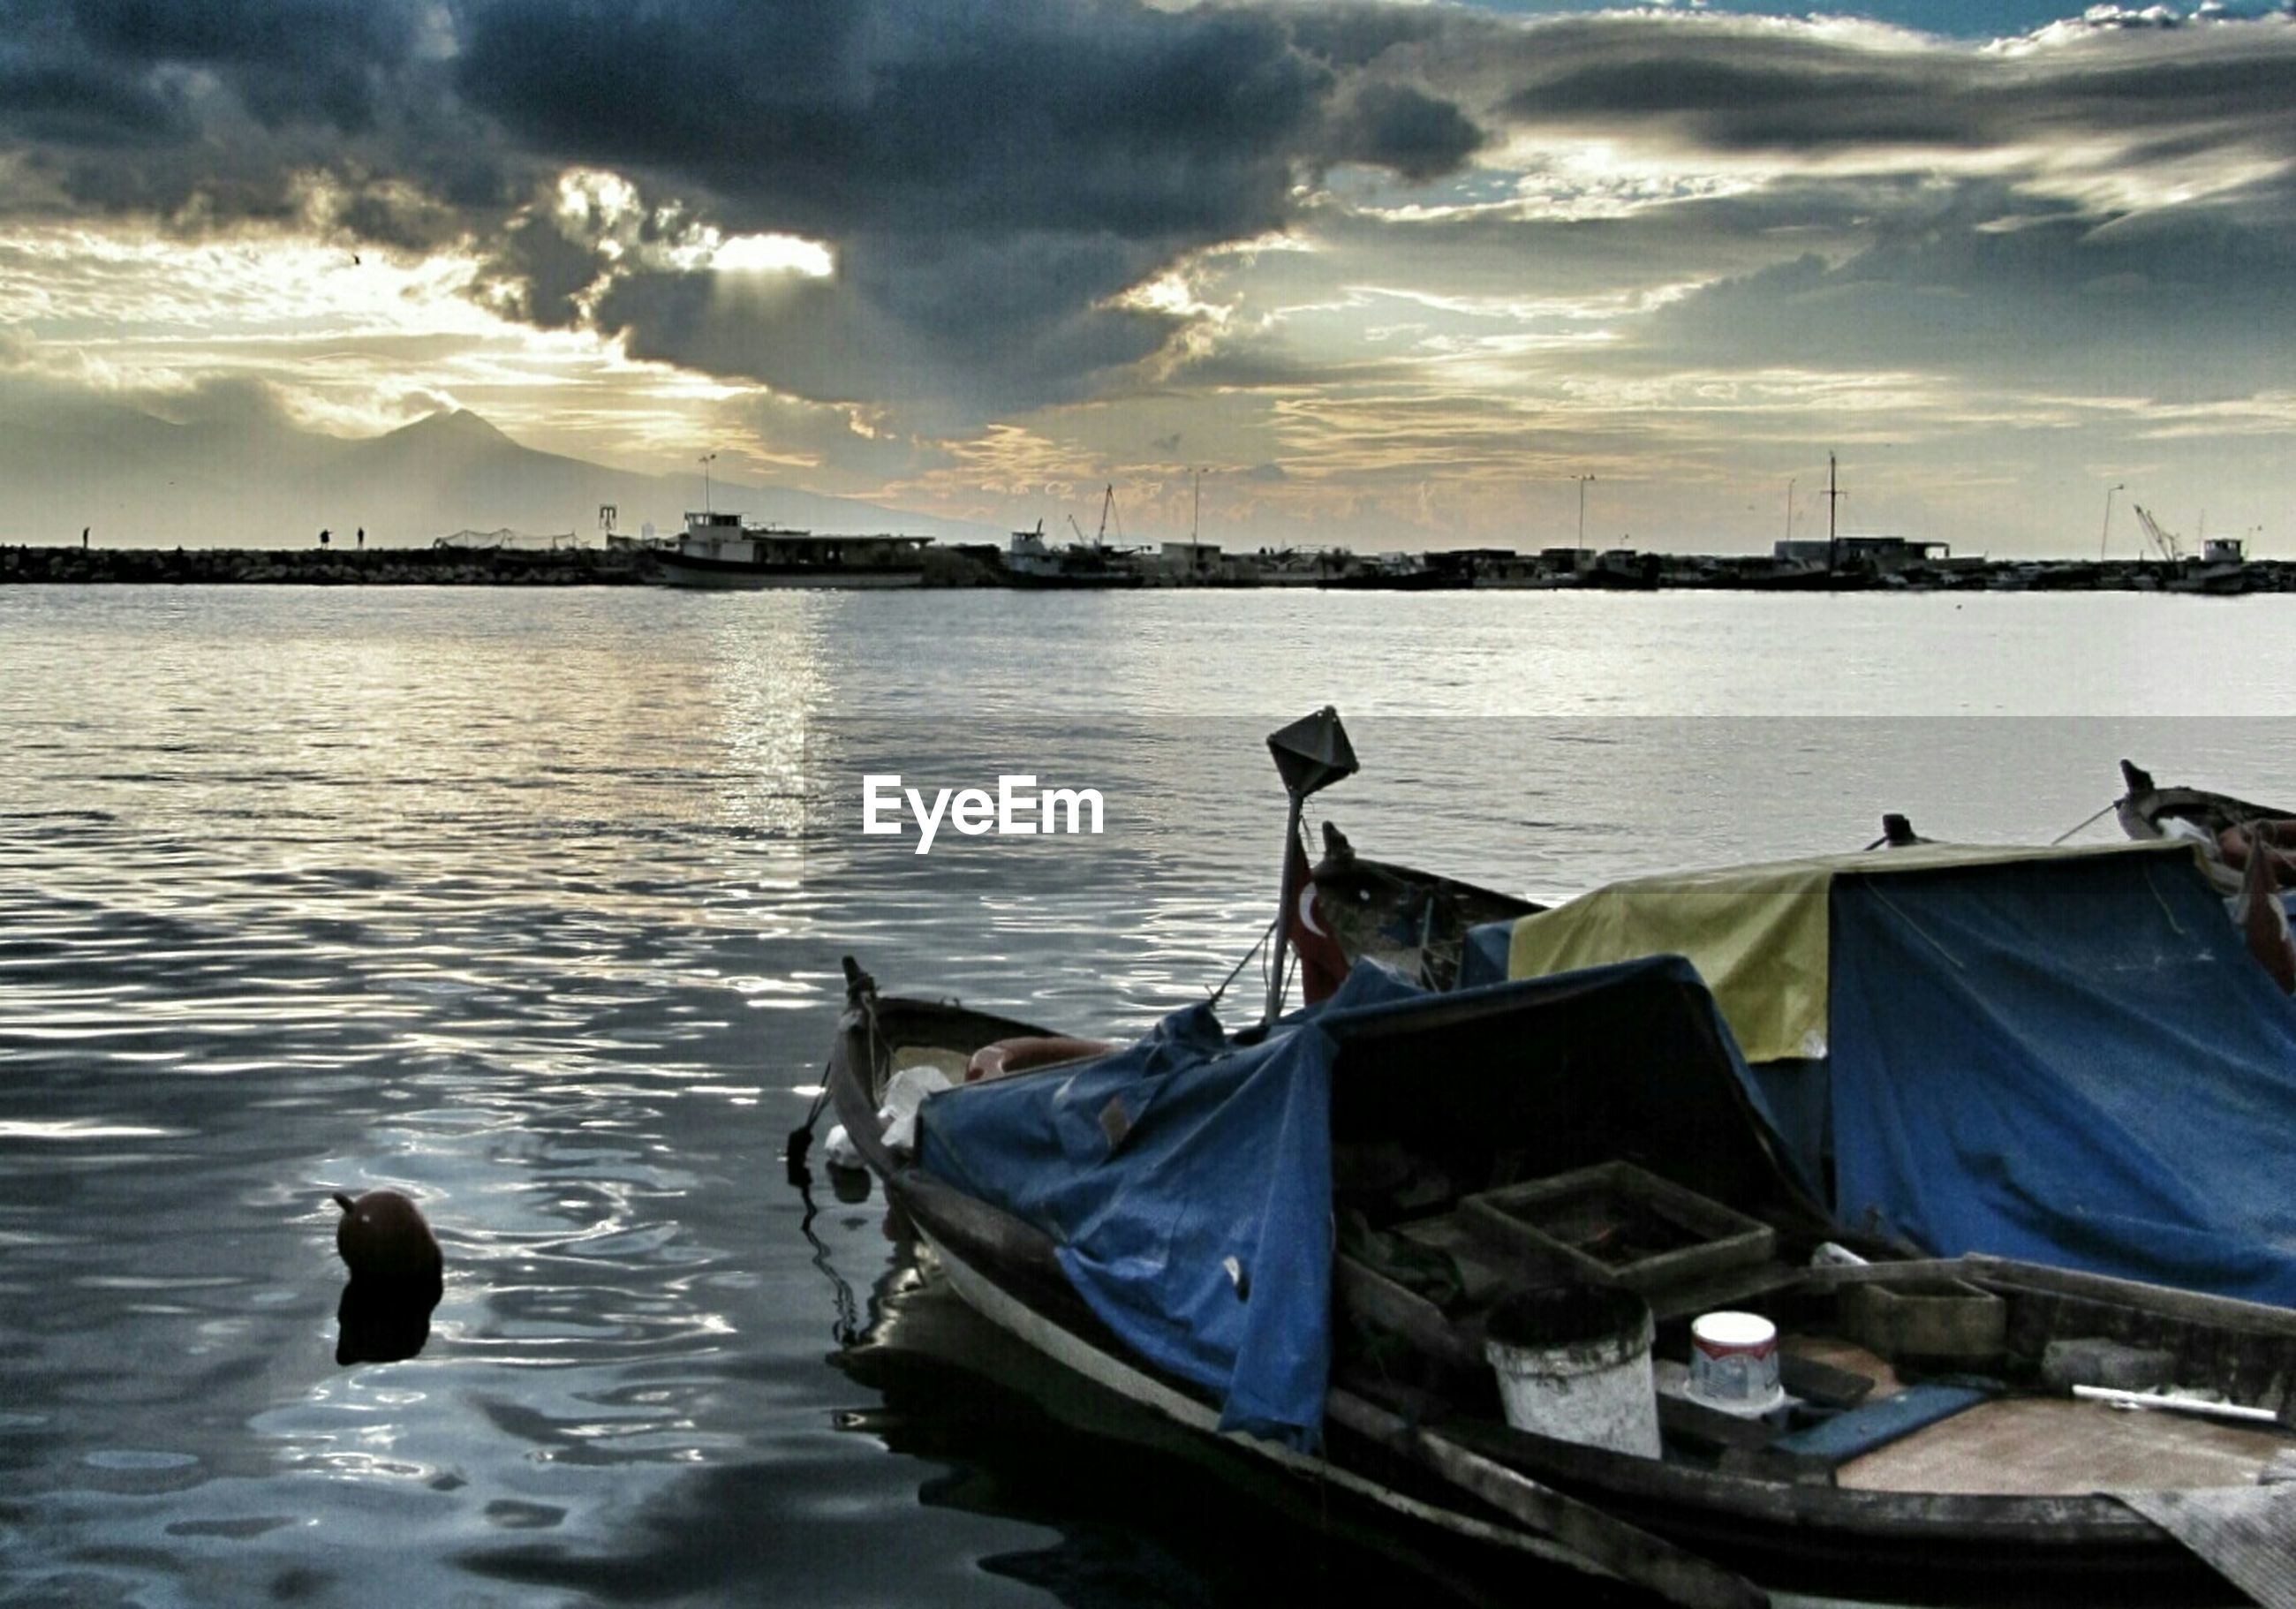 Boats moored in lake against cloudy sky during sunset